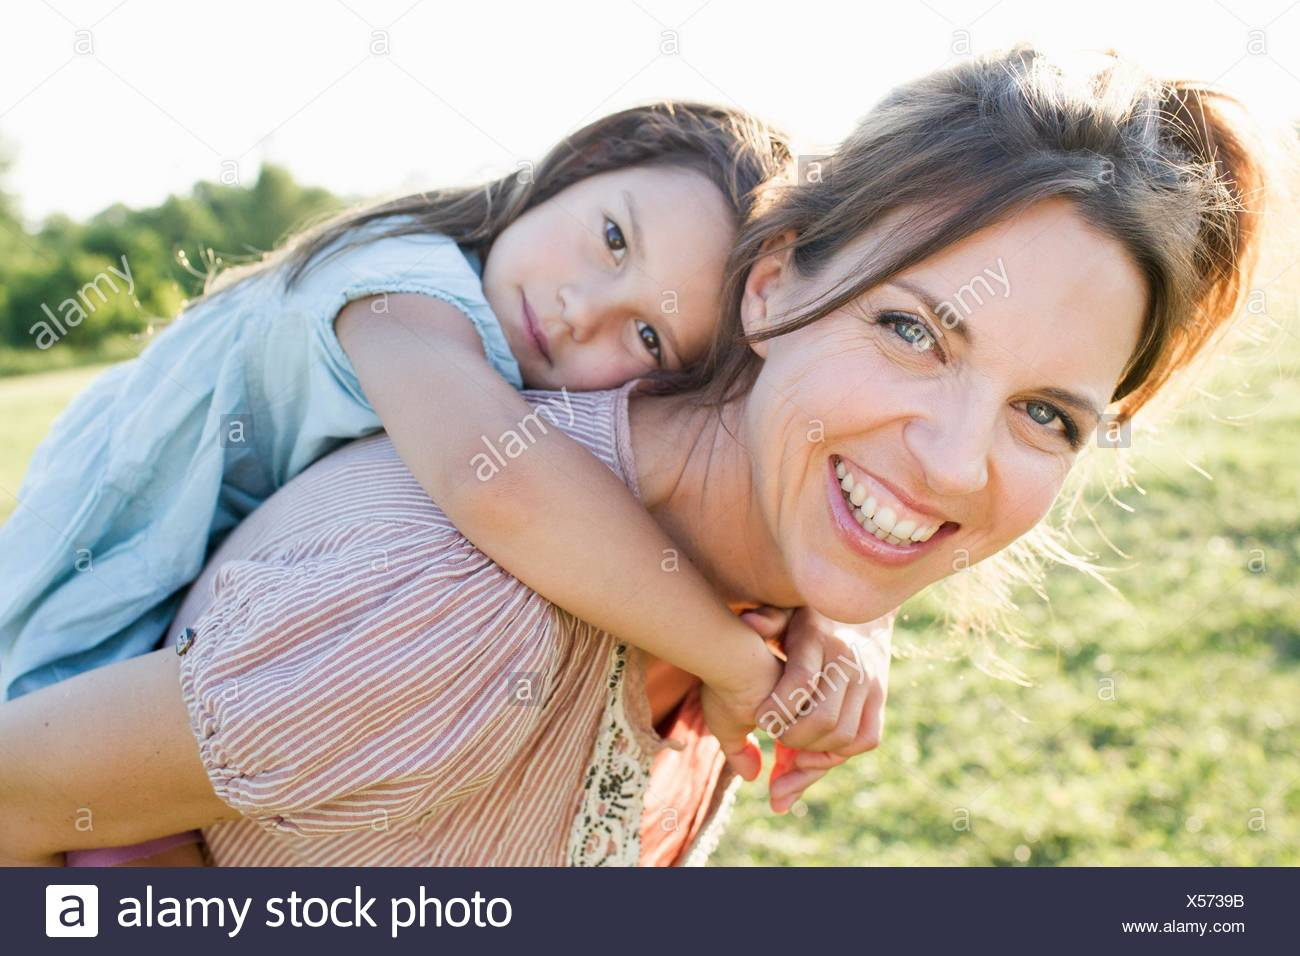 Mature woman giving daughter piggy back ride in park - Stock Image